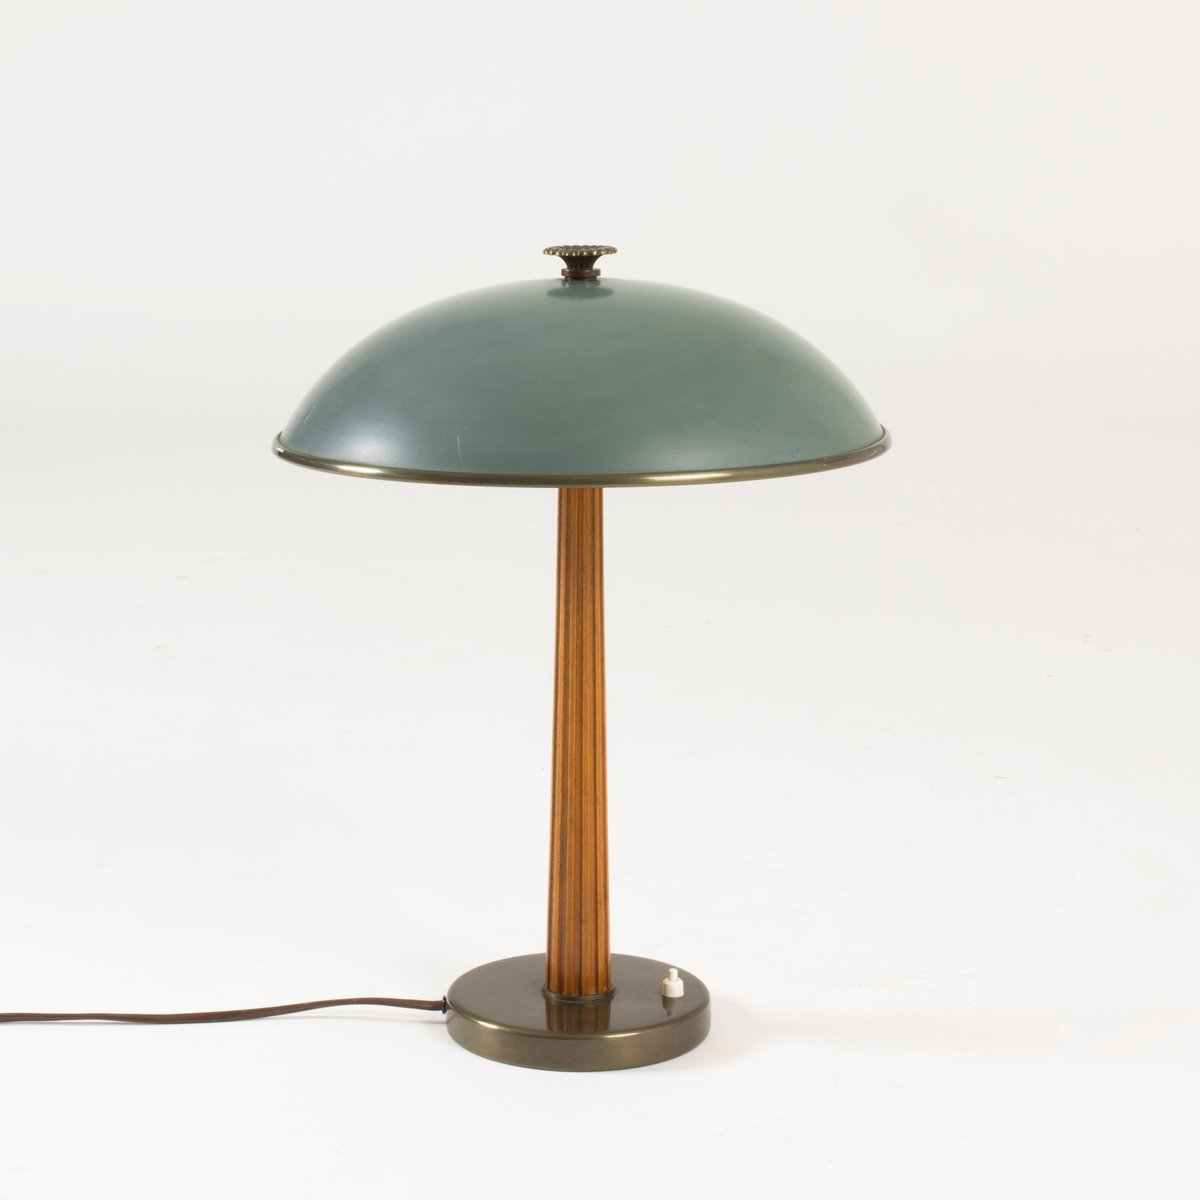 Metal mahogany table lamp from bhlmarks 1940s for sale at pamono metal mahogany table lamp from bhlmarks 1940s geotapseo Choice Image